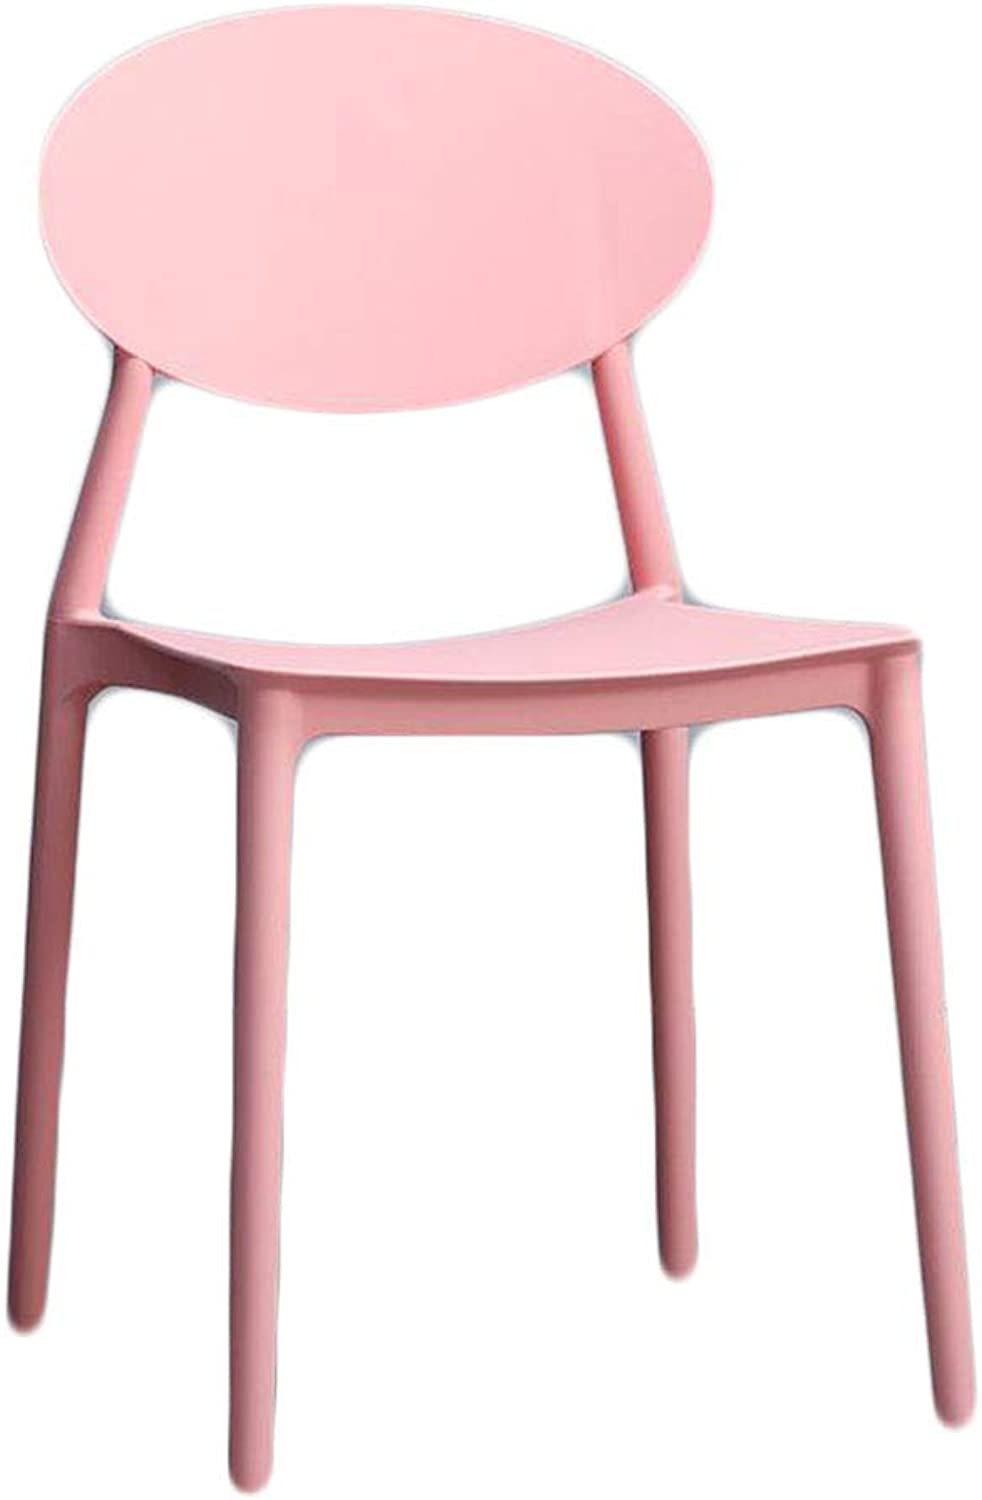 LYXPUZI Chair Home Lazy Plastic Stool Chair Nordic Leisure Chair Dining Chair (color   Pink)